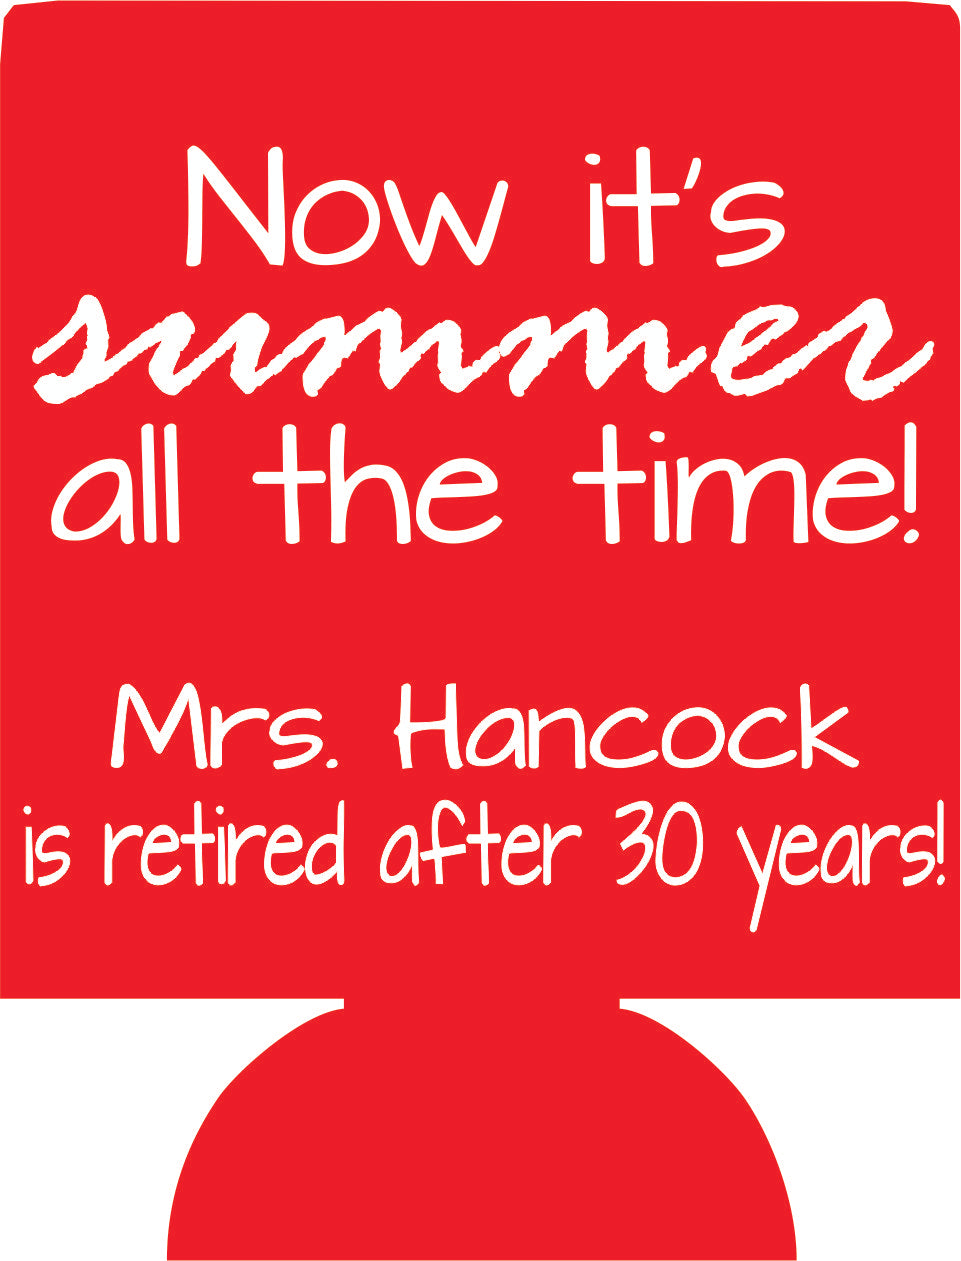 Summer all the time Retirement koozie design idea party favor ...